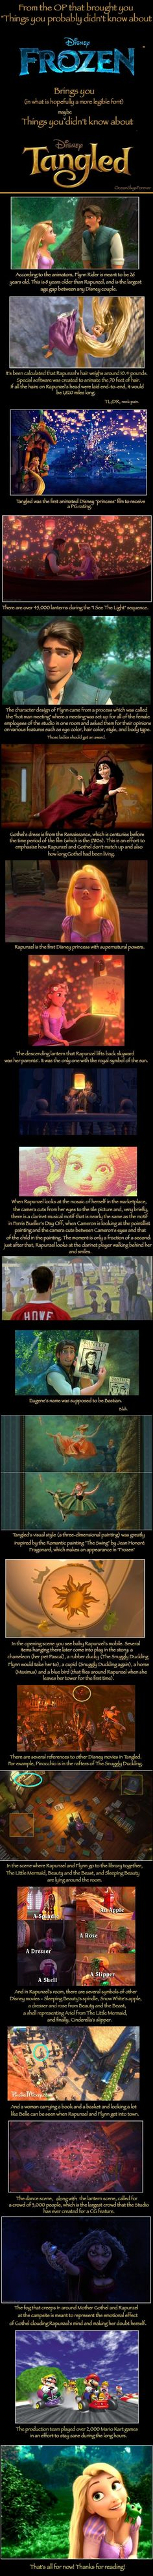 Things you maybe didnt know about Tangled. That was fantastic!